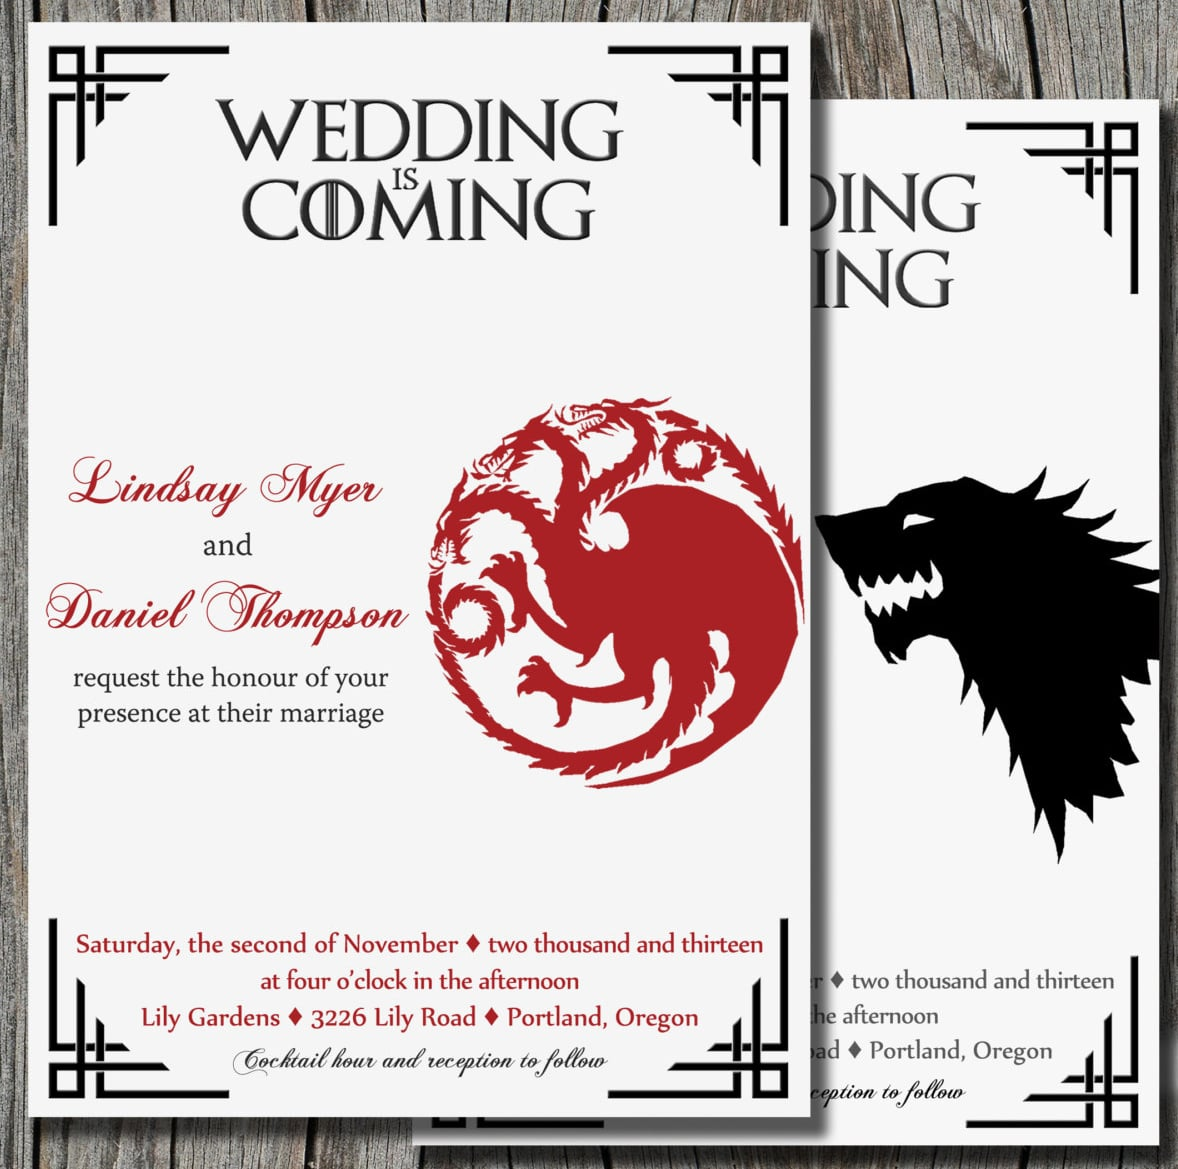 Give your wedding the Game of Thrones treatment right from the start with this standout wedding invitation ($16 for digital file).